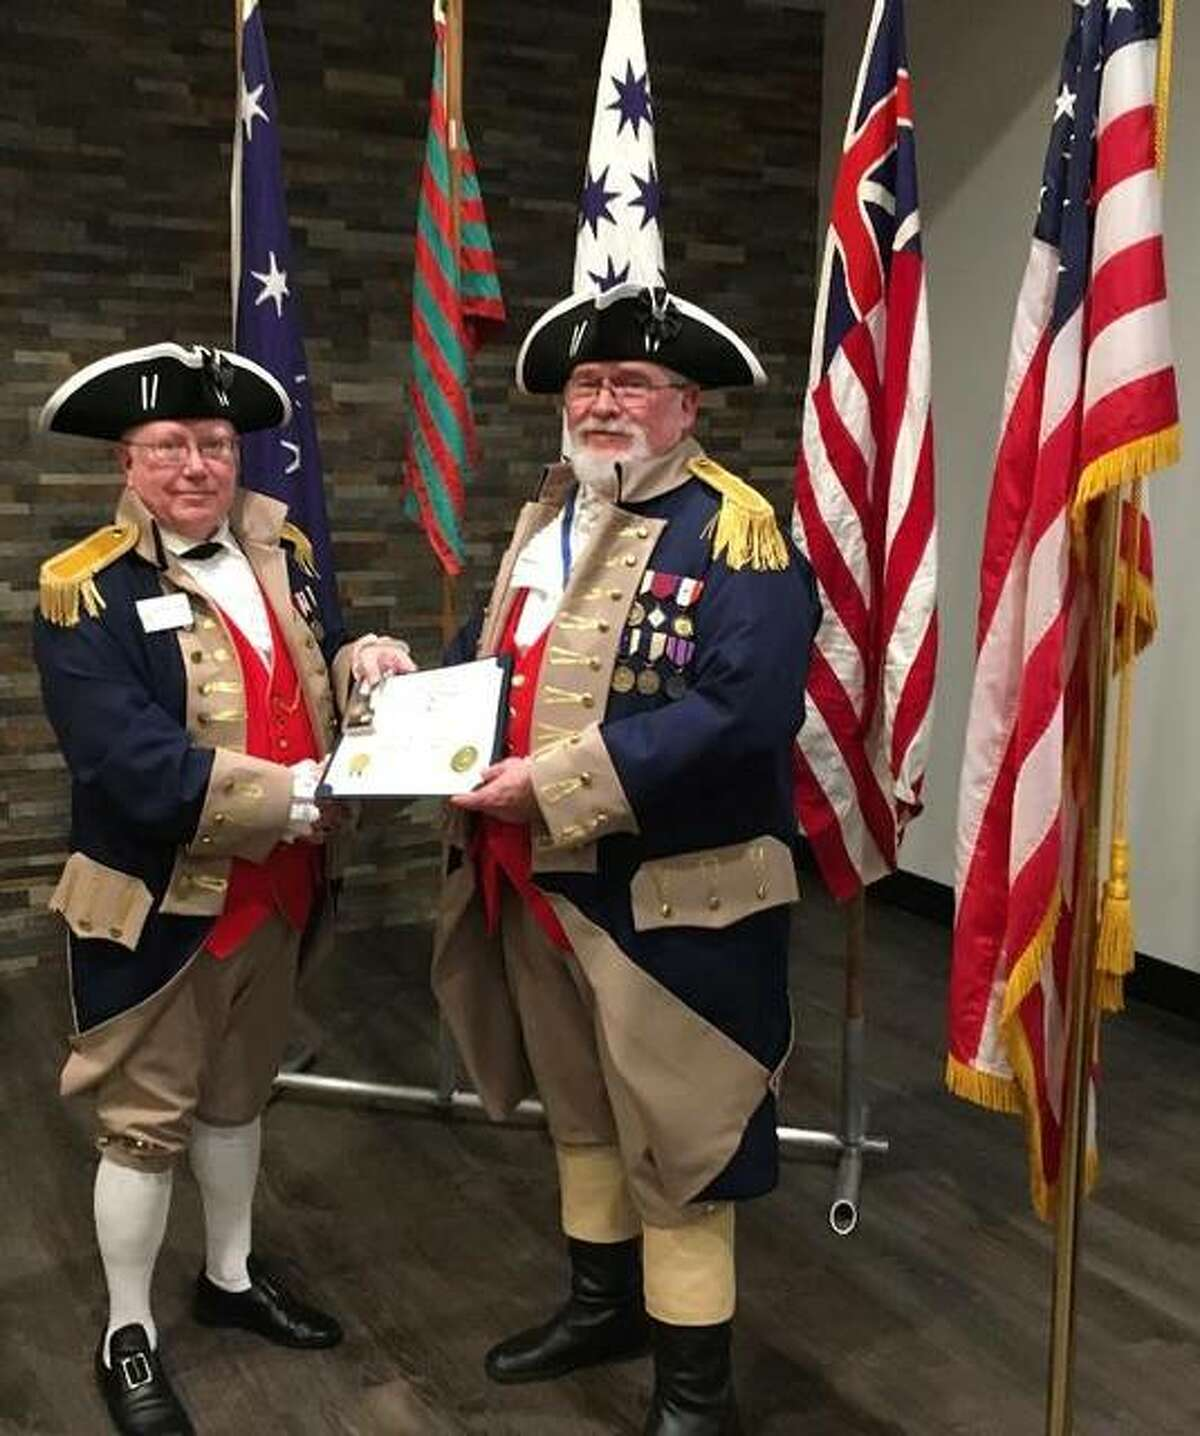 Chapter president Robert Ridenour presents the Sherman Medal for leadership to Richard Ruedin, vice president of the Gen. George Rogers Clark Chapter of the Sons of the American Revolution, on Feb. 20 in East Alton.